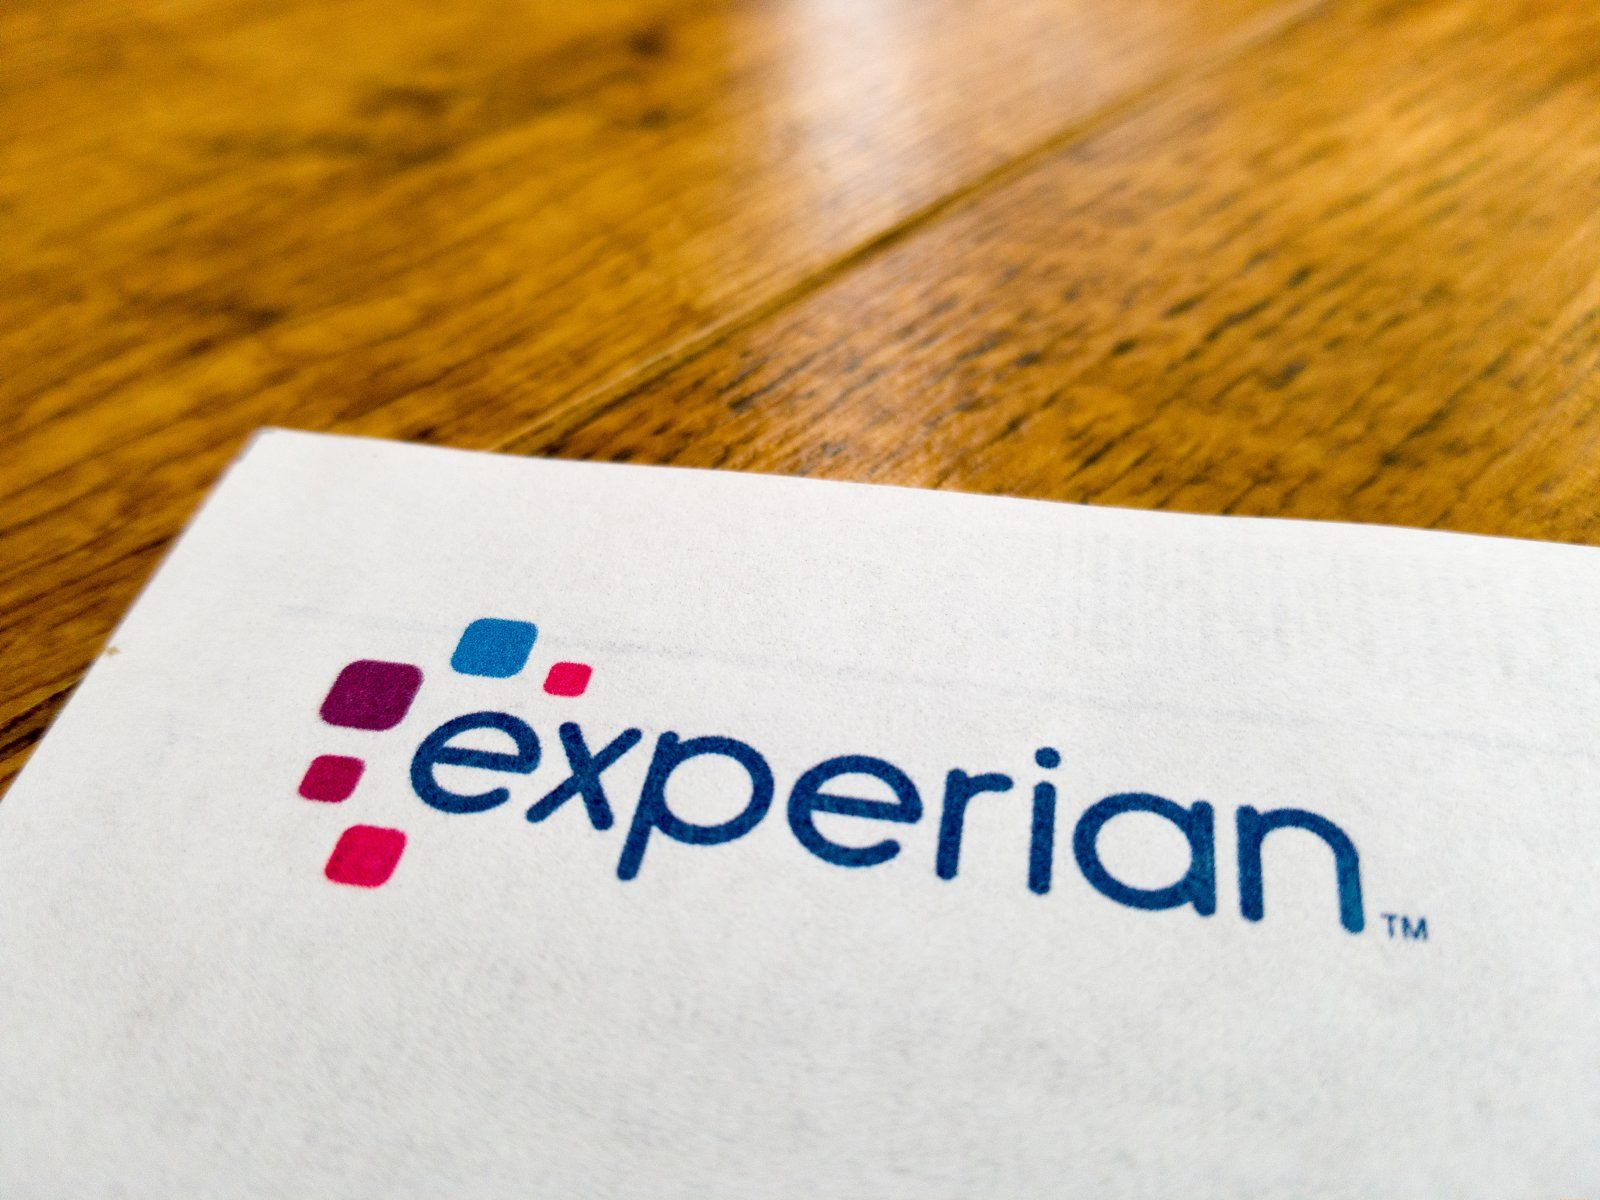 Experian makes it easy credit freeze credit score